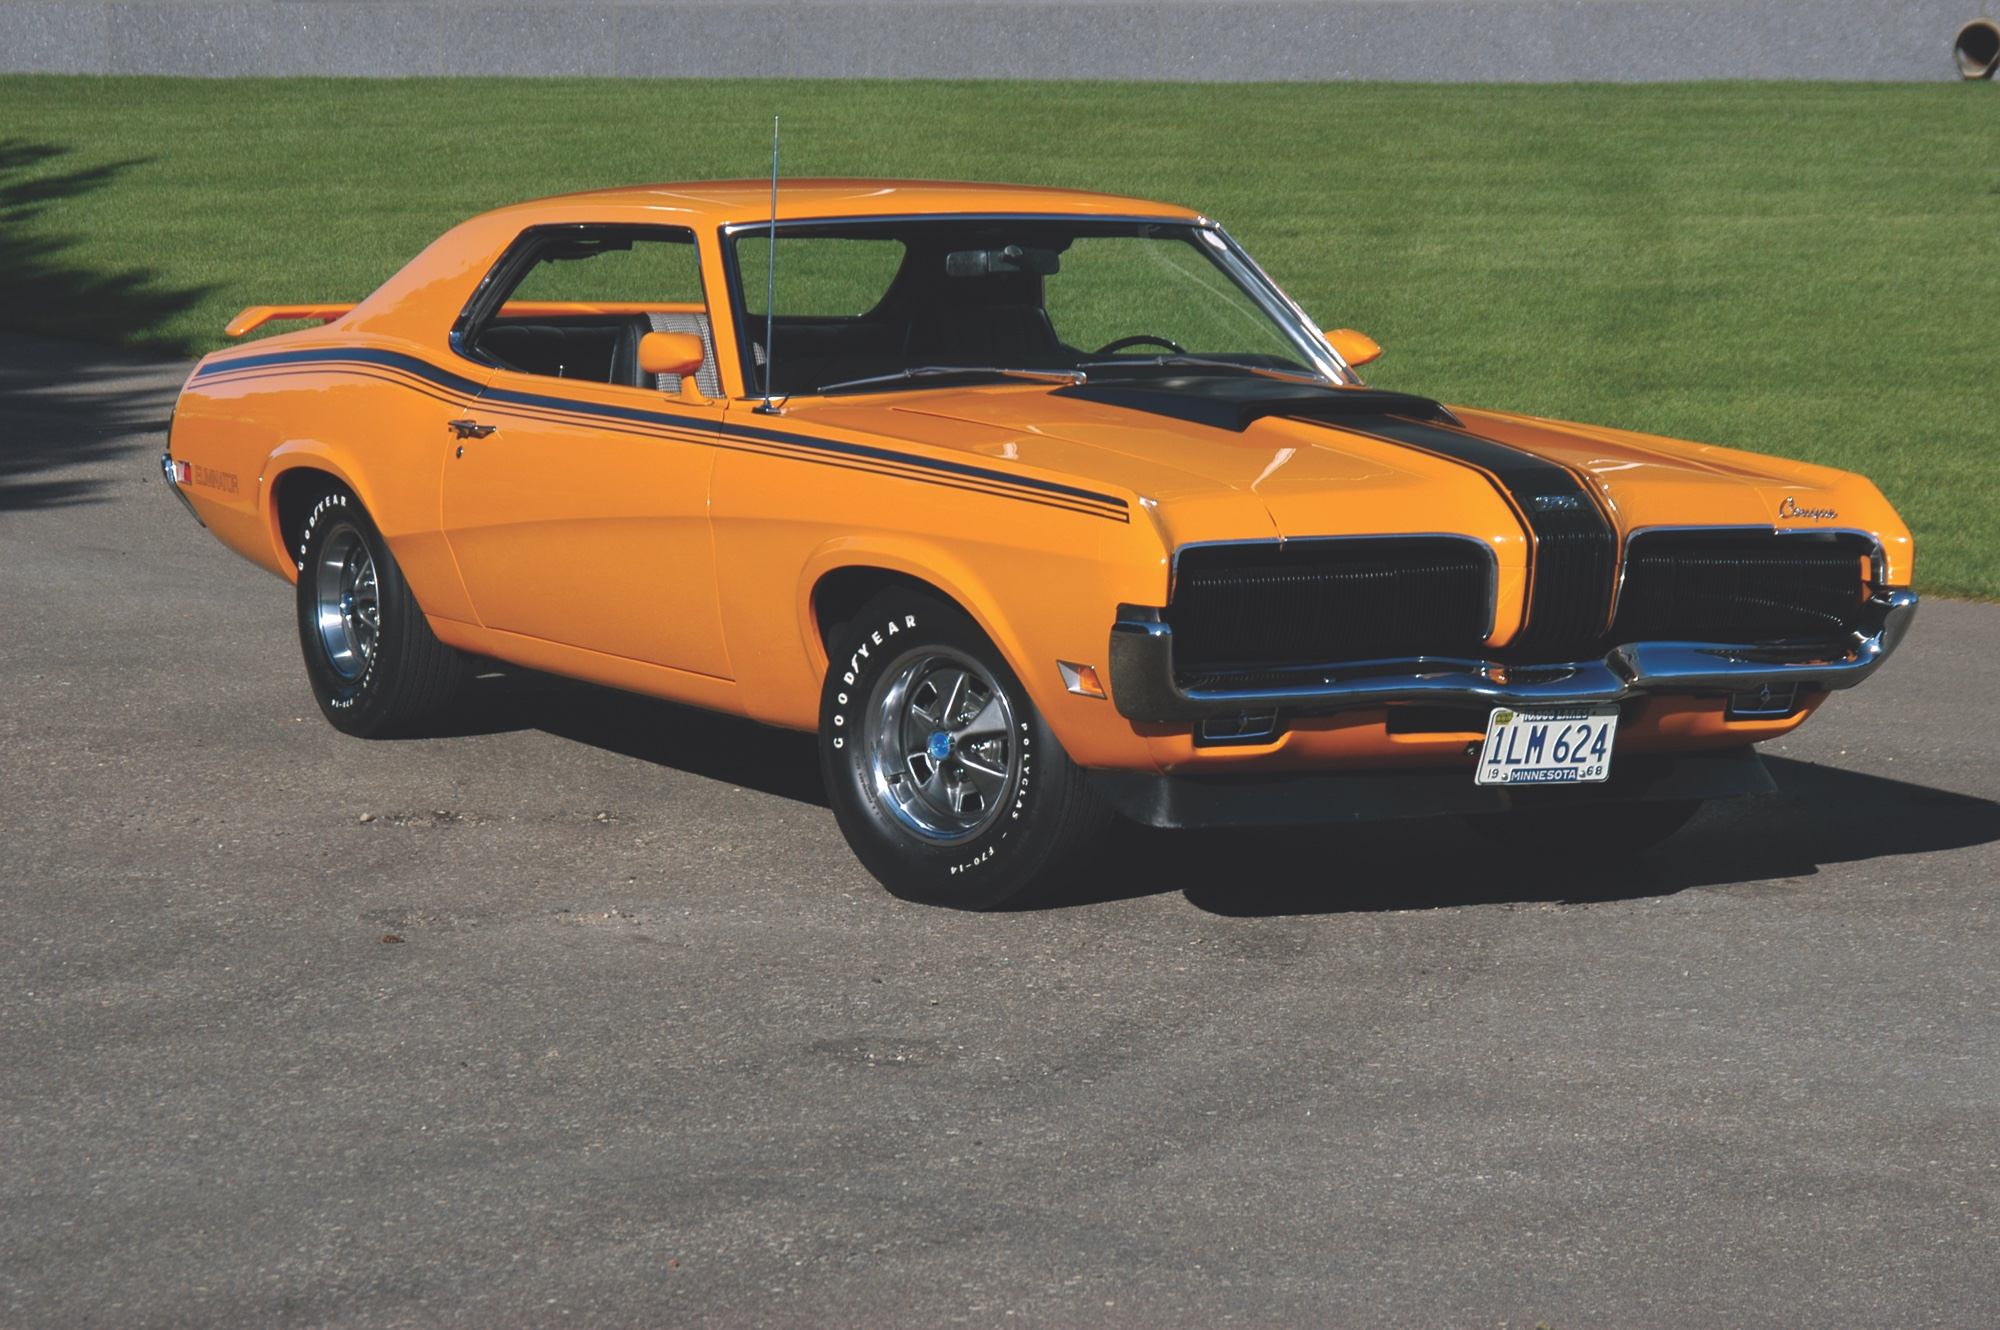 Ford Ranchero 1975 images #1205